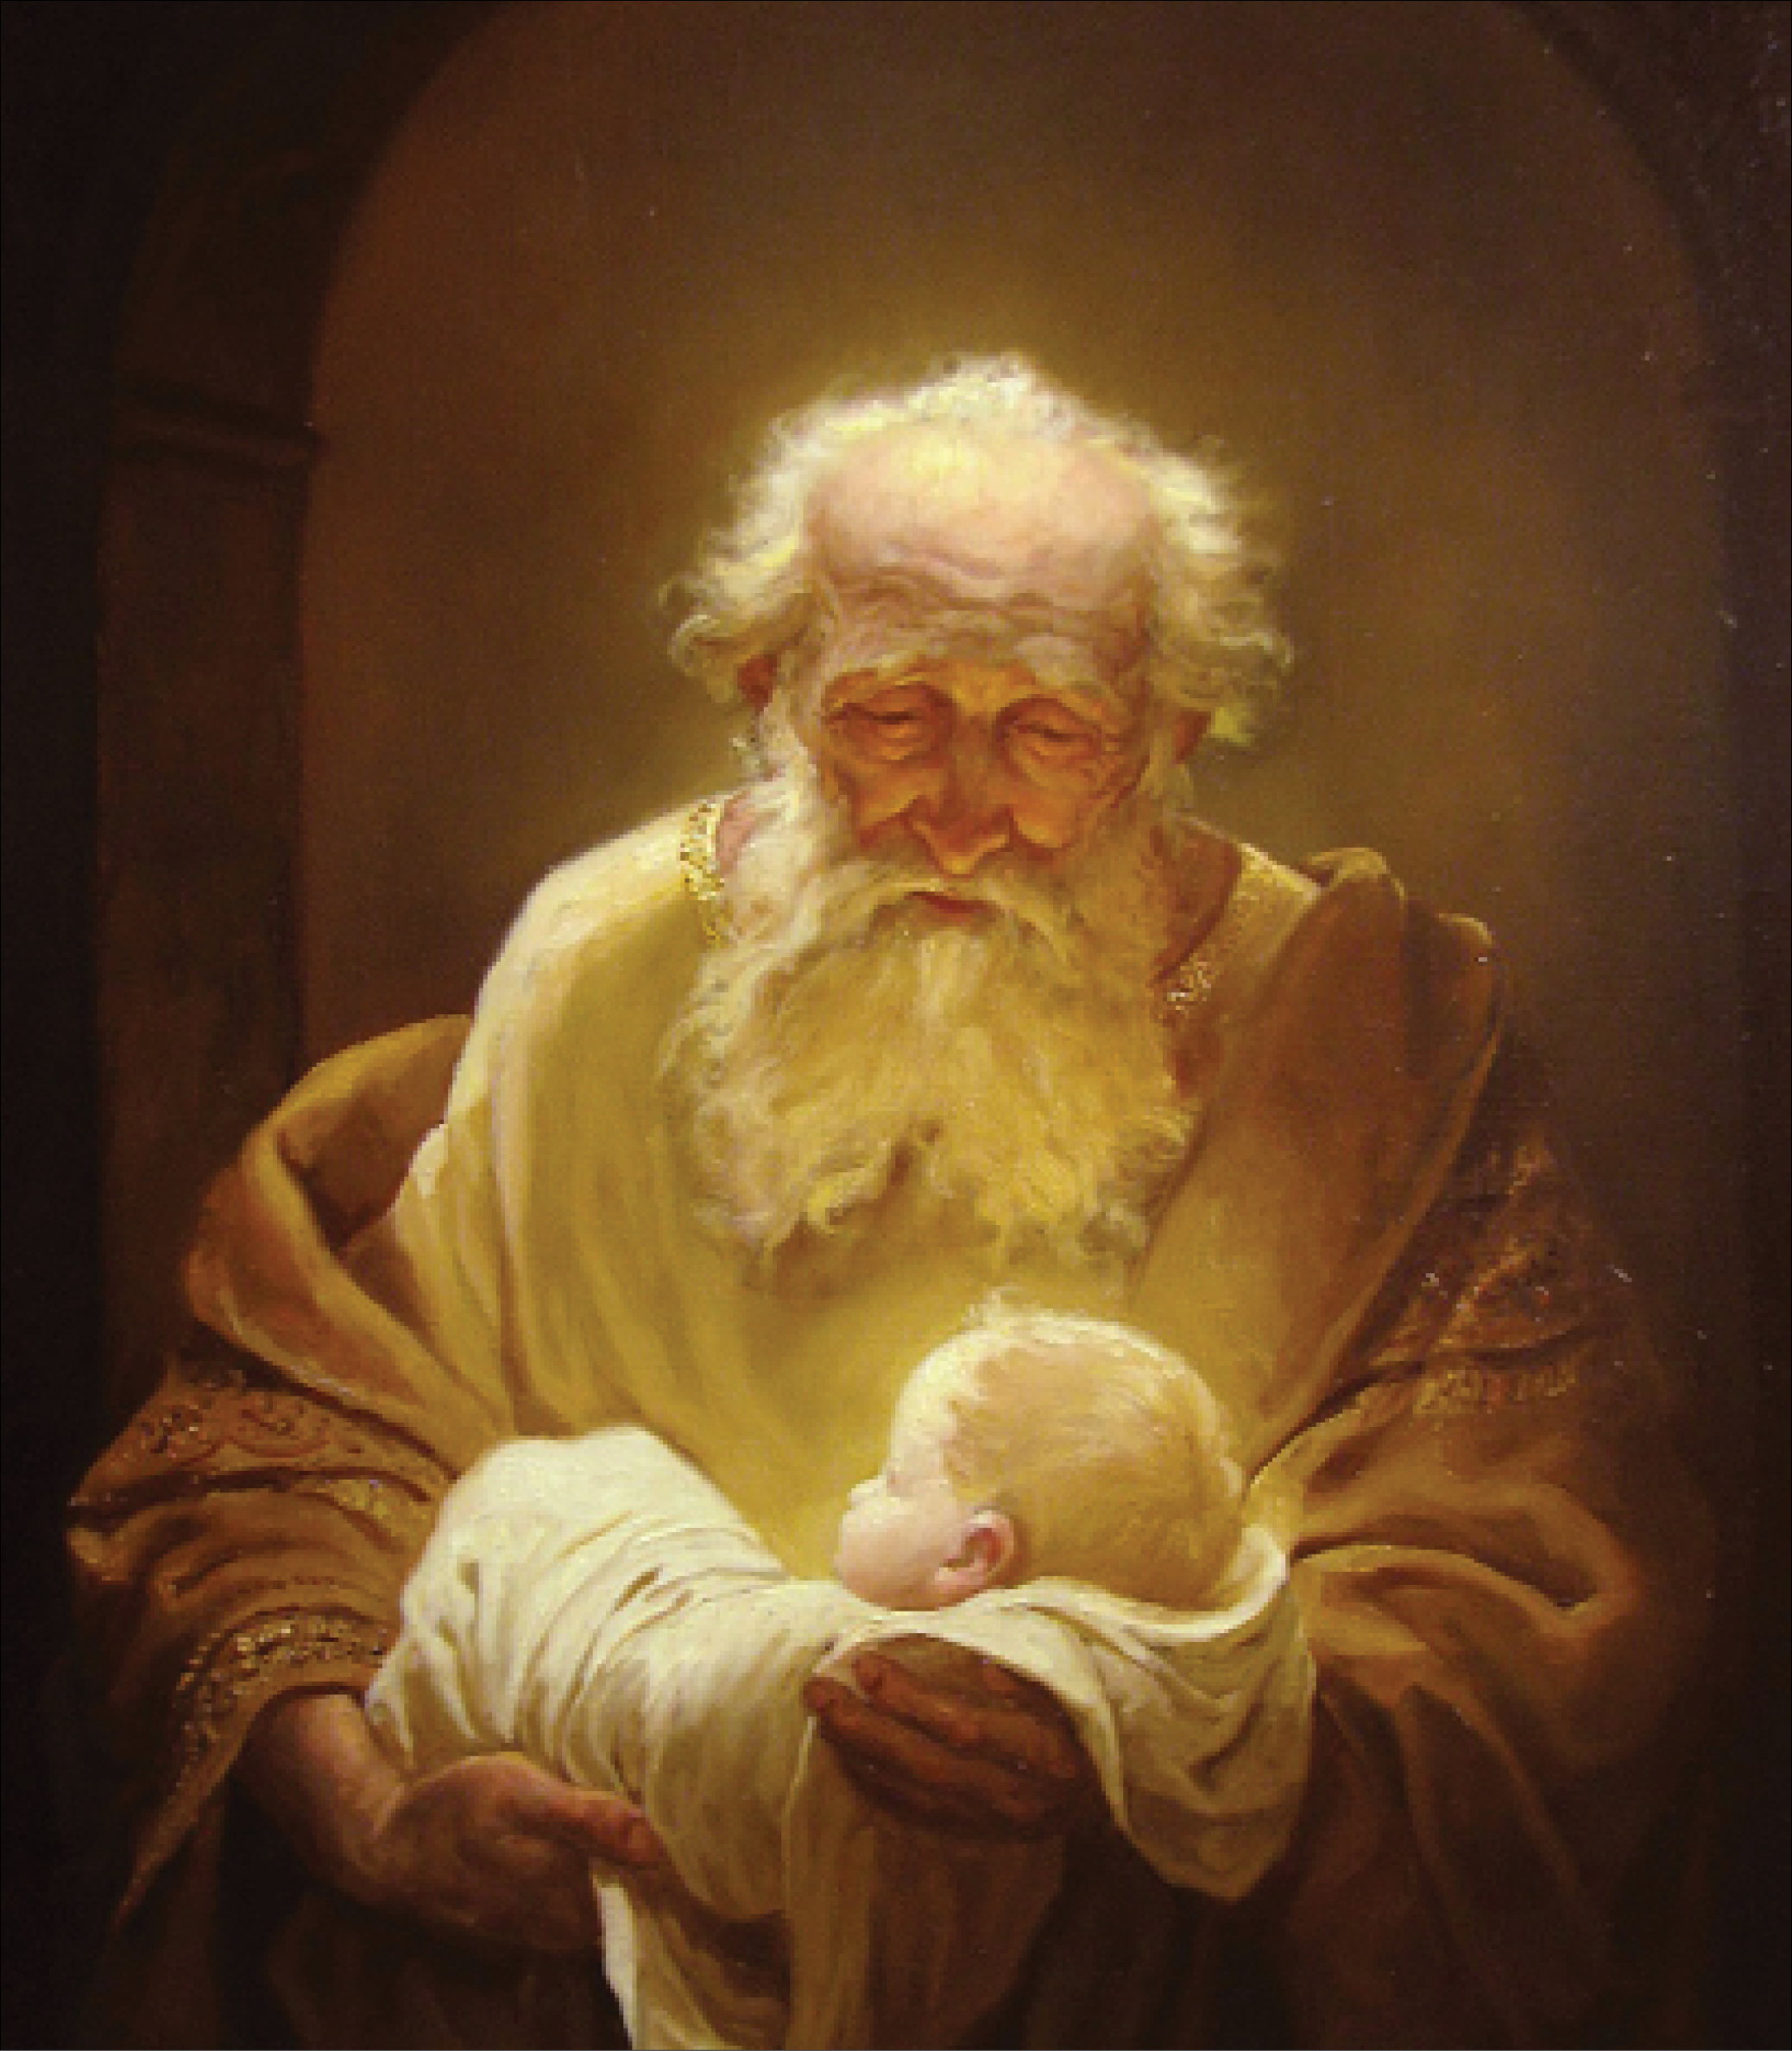 Avoiding Christmas letdown: Lessons from Simeon's song